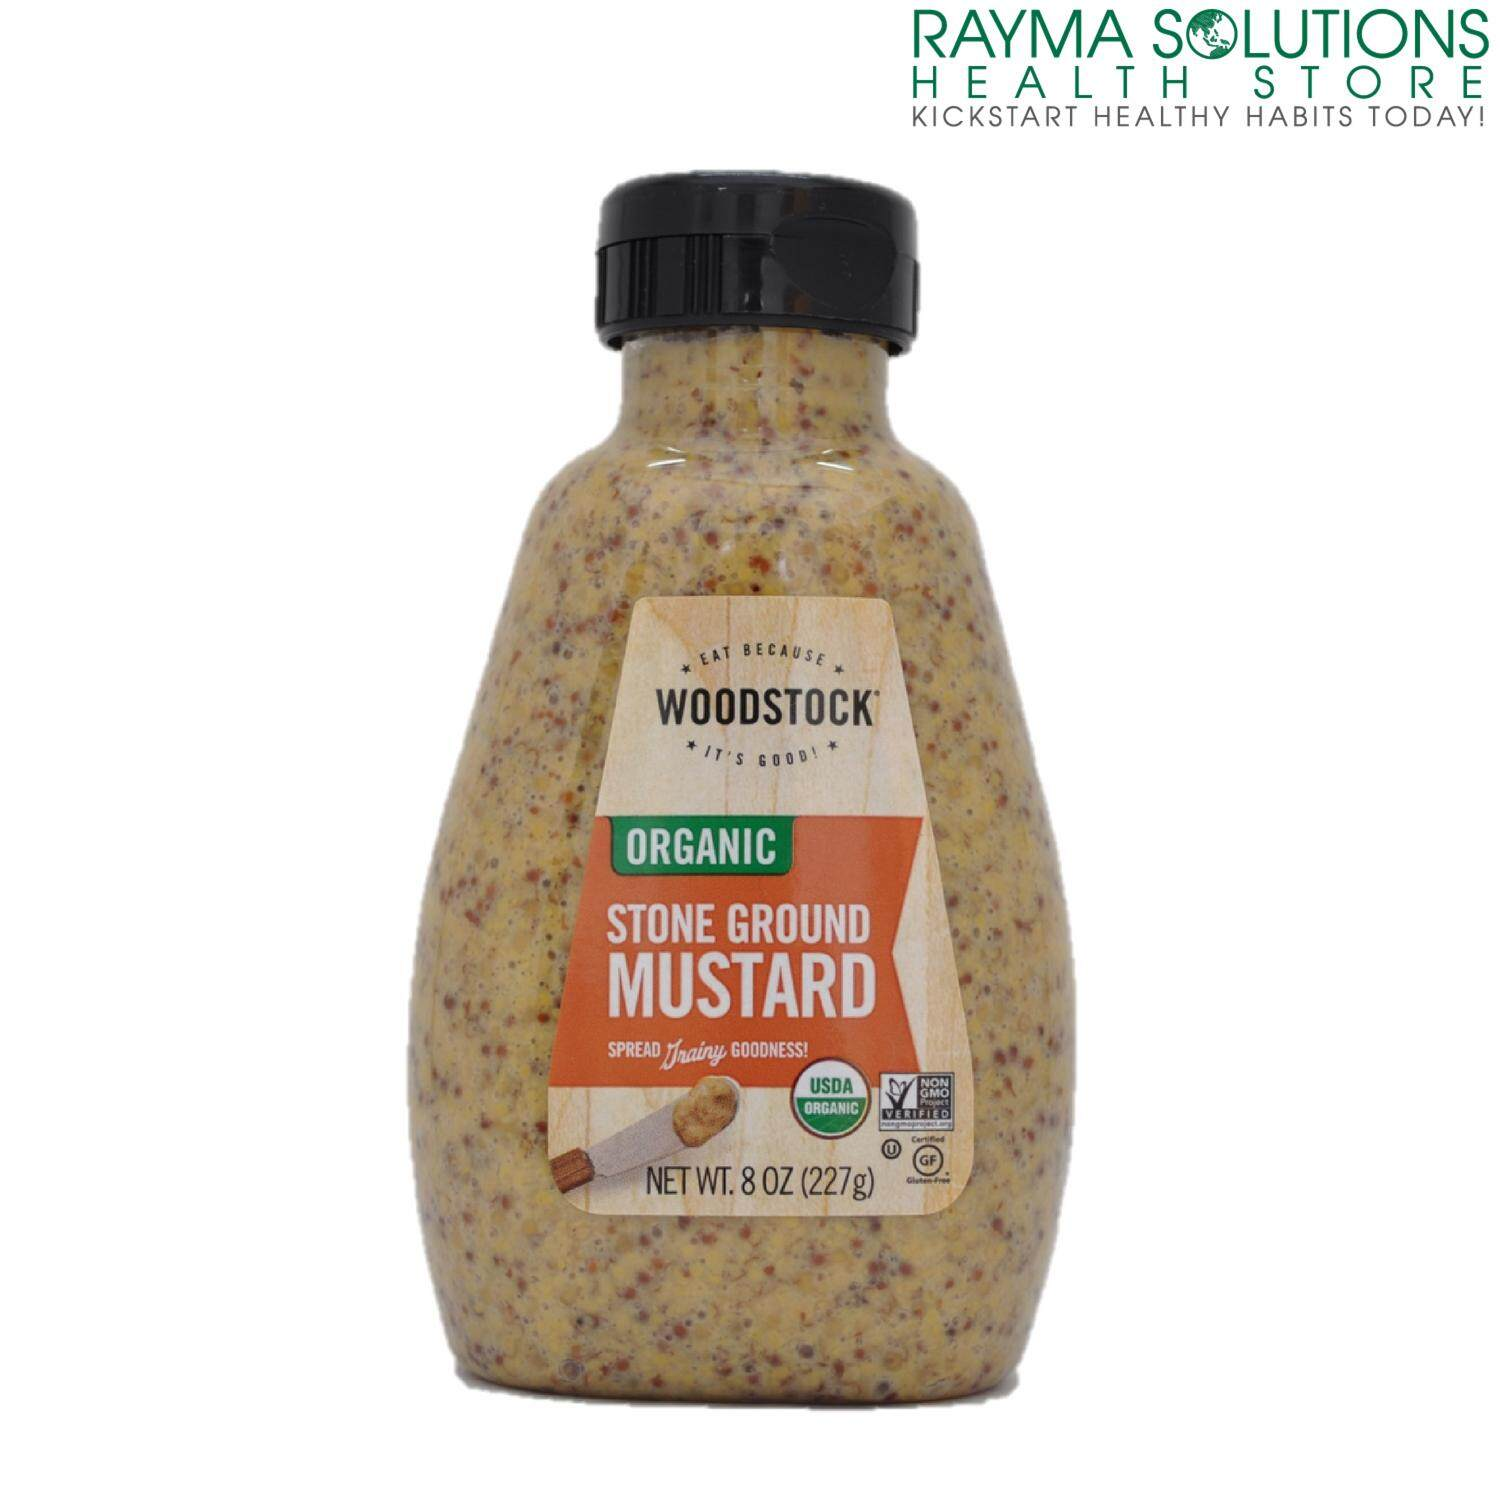 WOODSTOCK Organic Stone Ground Mustard 227g